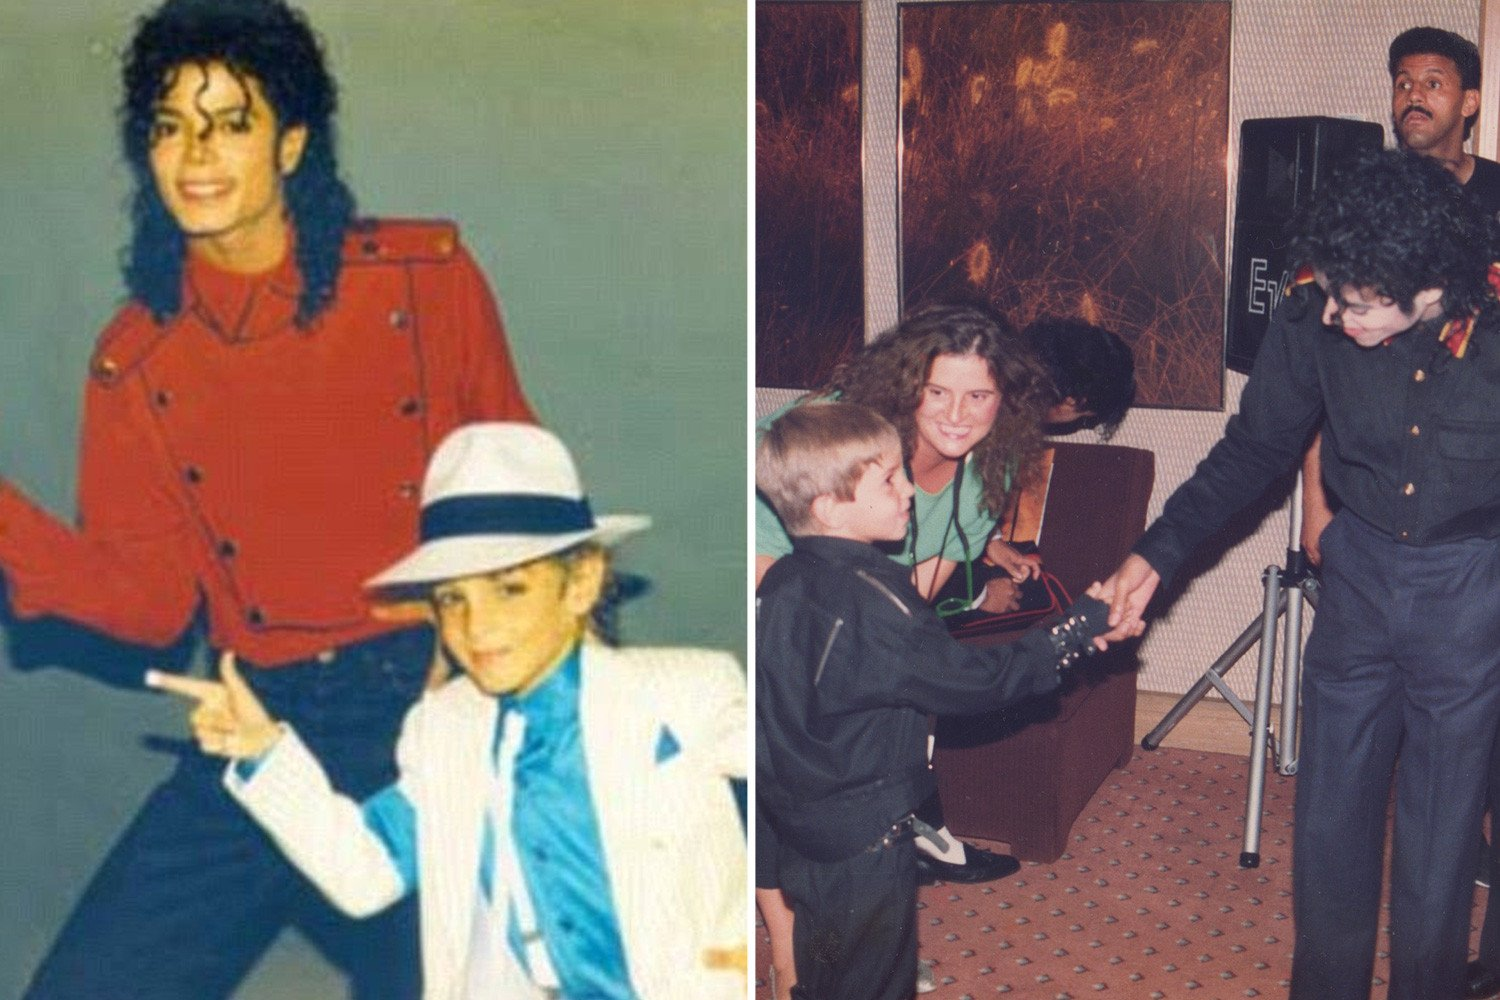 Michael Jackson used 'do not disturb' signs to let him abuse kids without being caught, Leaving Neverland documentary accuser claims